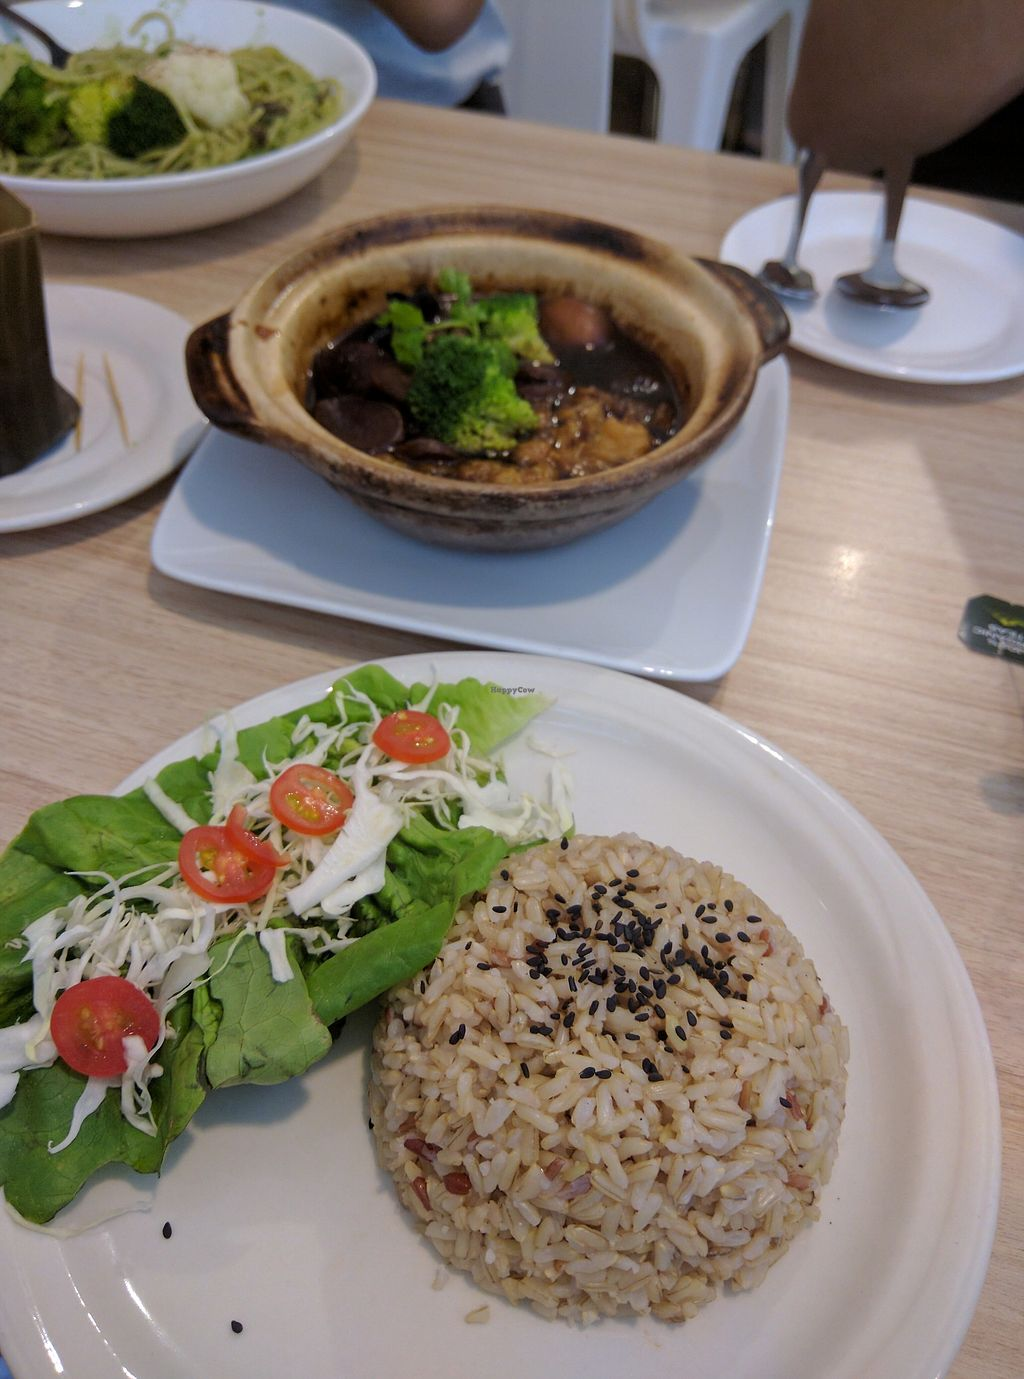 """Photo of The Leaf Healthy House  by <a href=""""/members/profile/Summer_Tan"""">Summer_Tan</a> <br/>Slow Braised Vinegar Ginger - RM13.90 (comes with rice) HIGHLY RECOMMEND THIS! Fragrant and very flavourful! Strong with lots ginger and vinegar, and well balanced! Very impressed and absolutely loved this <br/> January 31, 2018  - <a href='/contact/abuse/image/27692/353294'>Report</a>"""